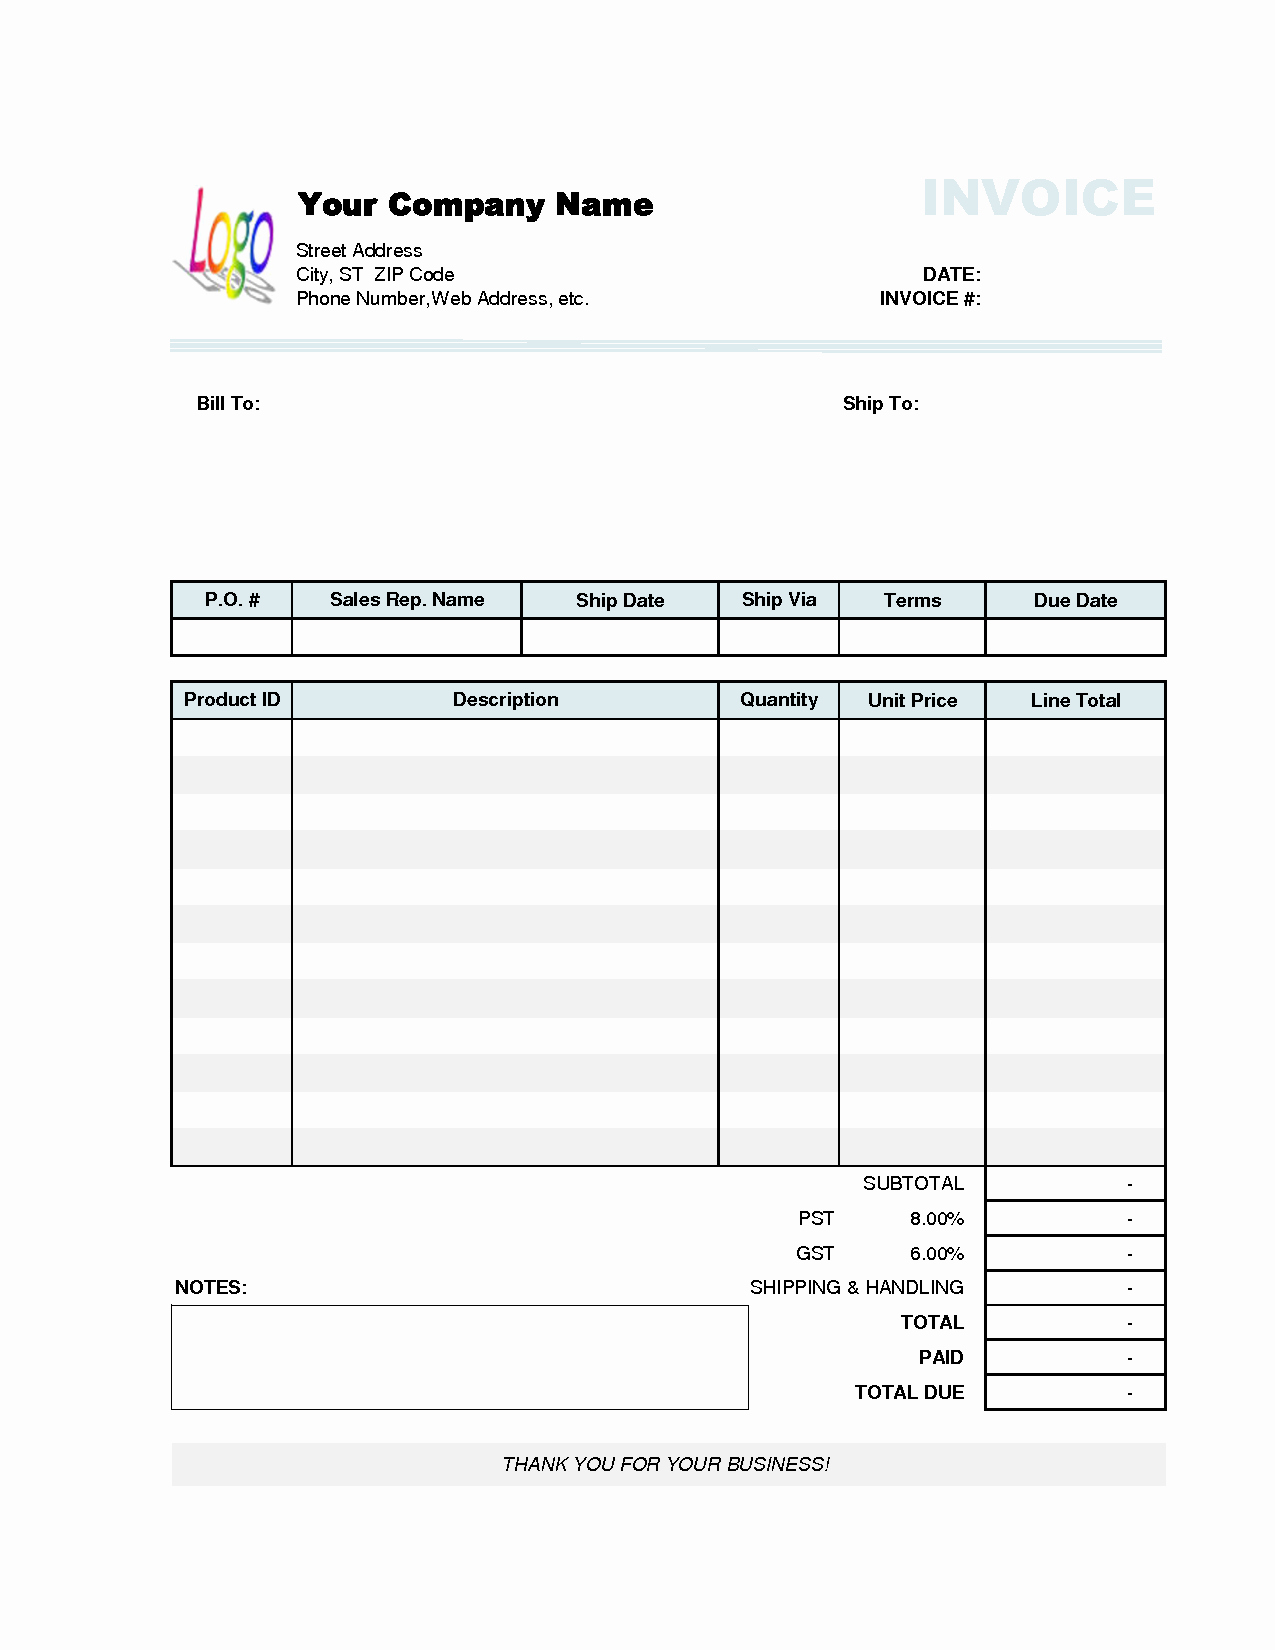 Create Invoice Template In Excel Lovely Invoice Template Excel 2010